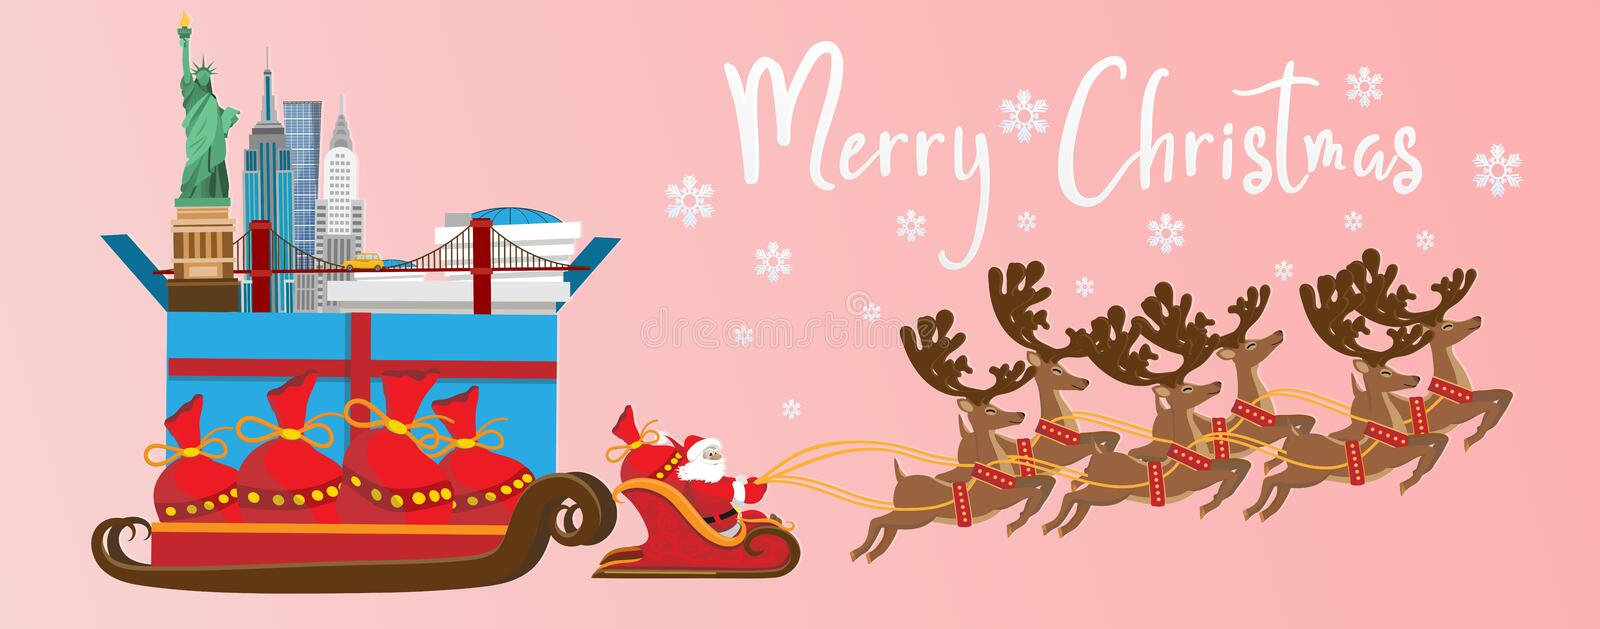 Merry Christmas and Happy New Year. Illustration of Santa Claus royalty free illustration